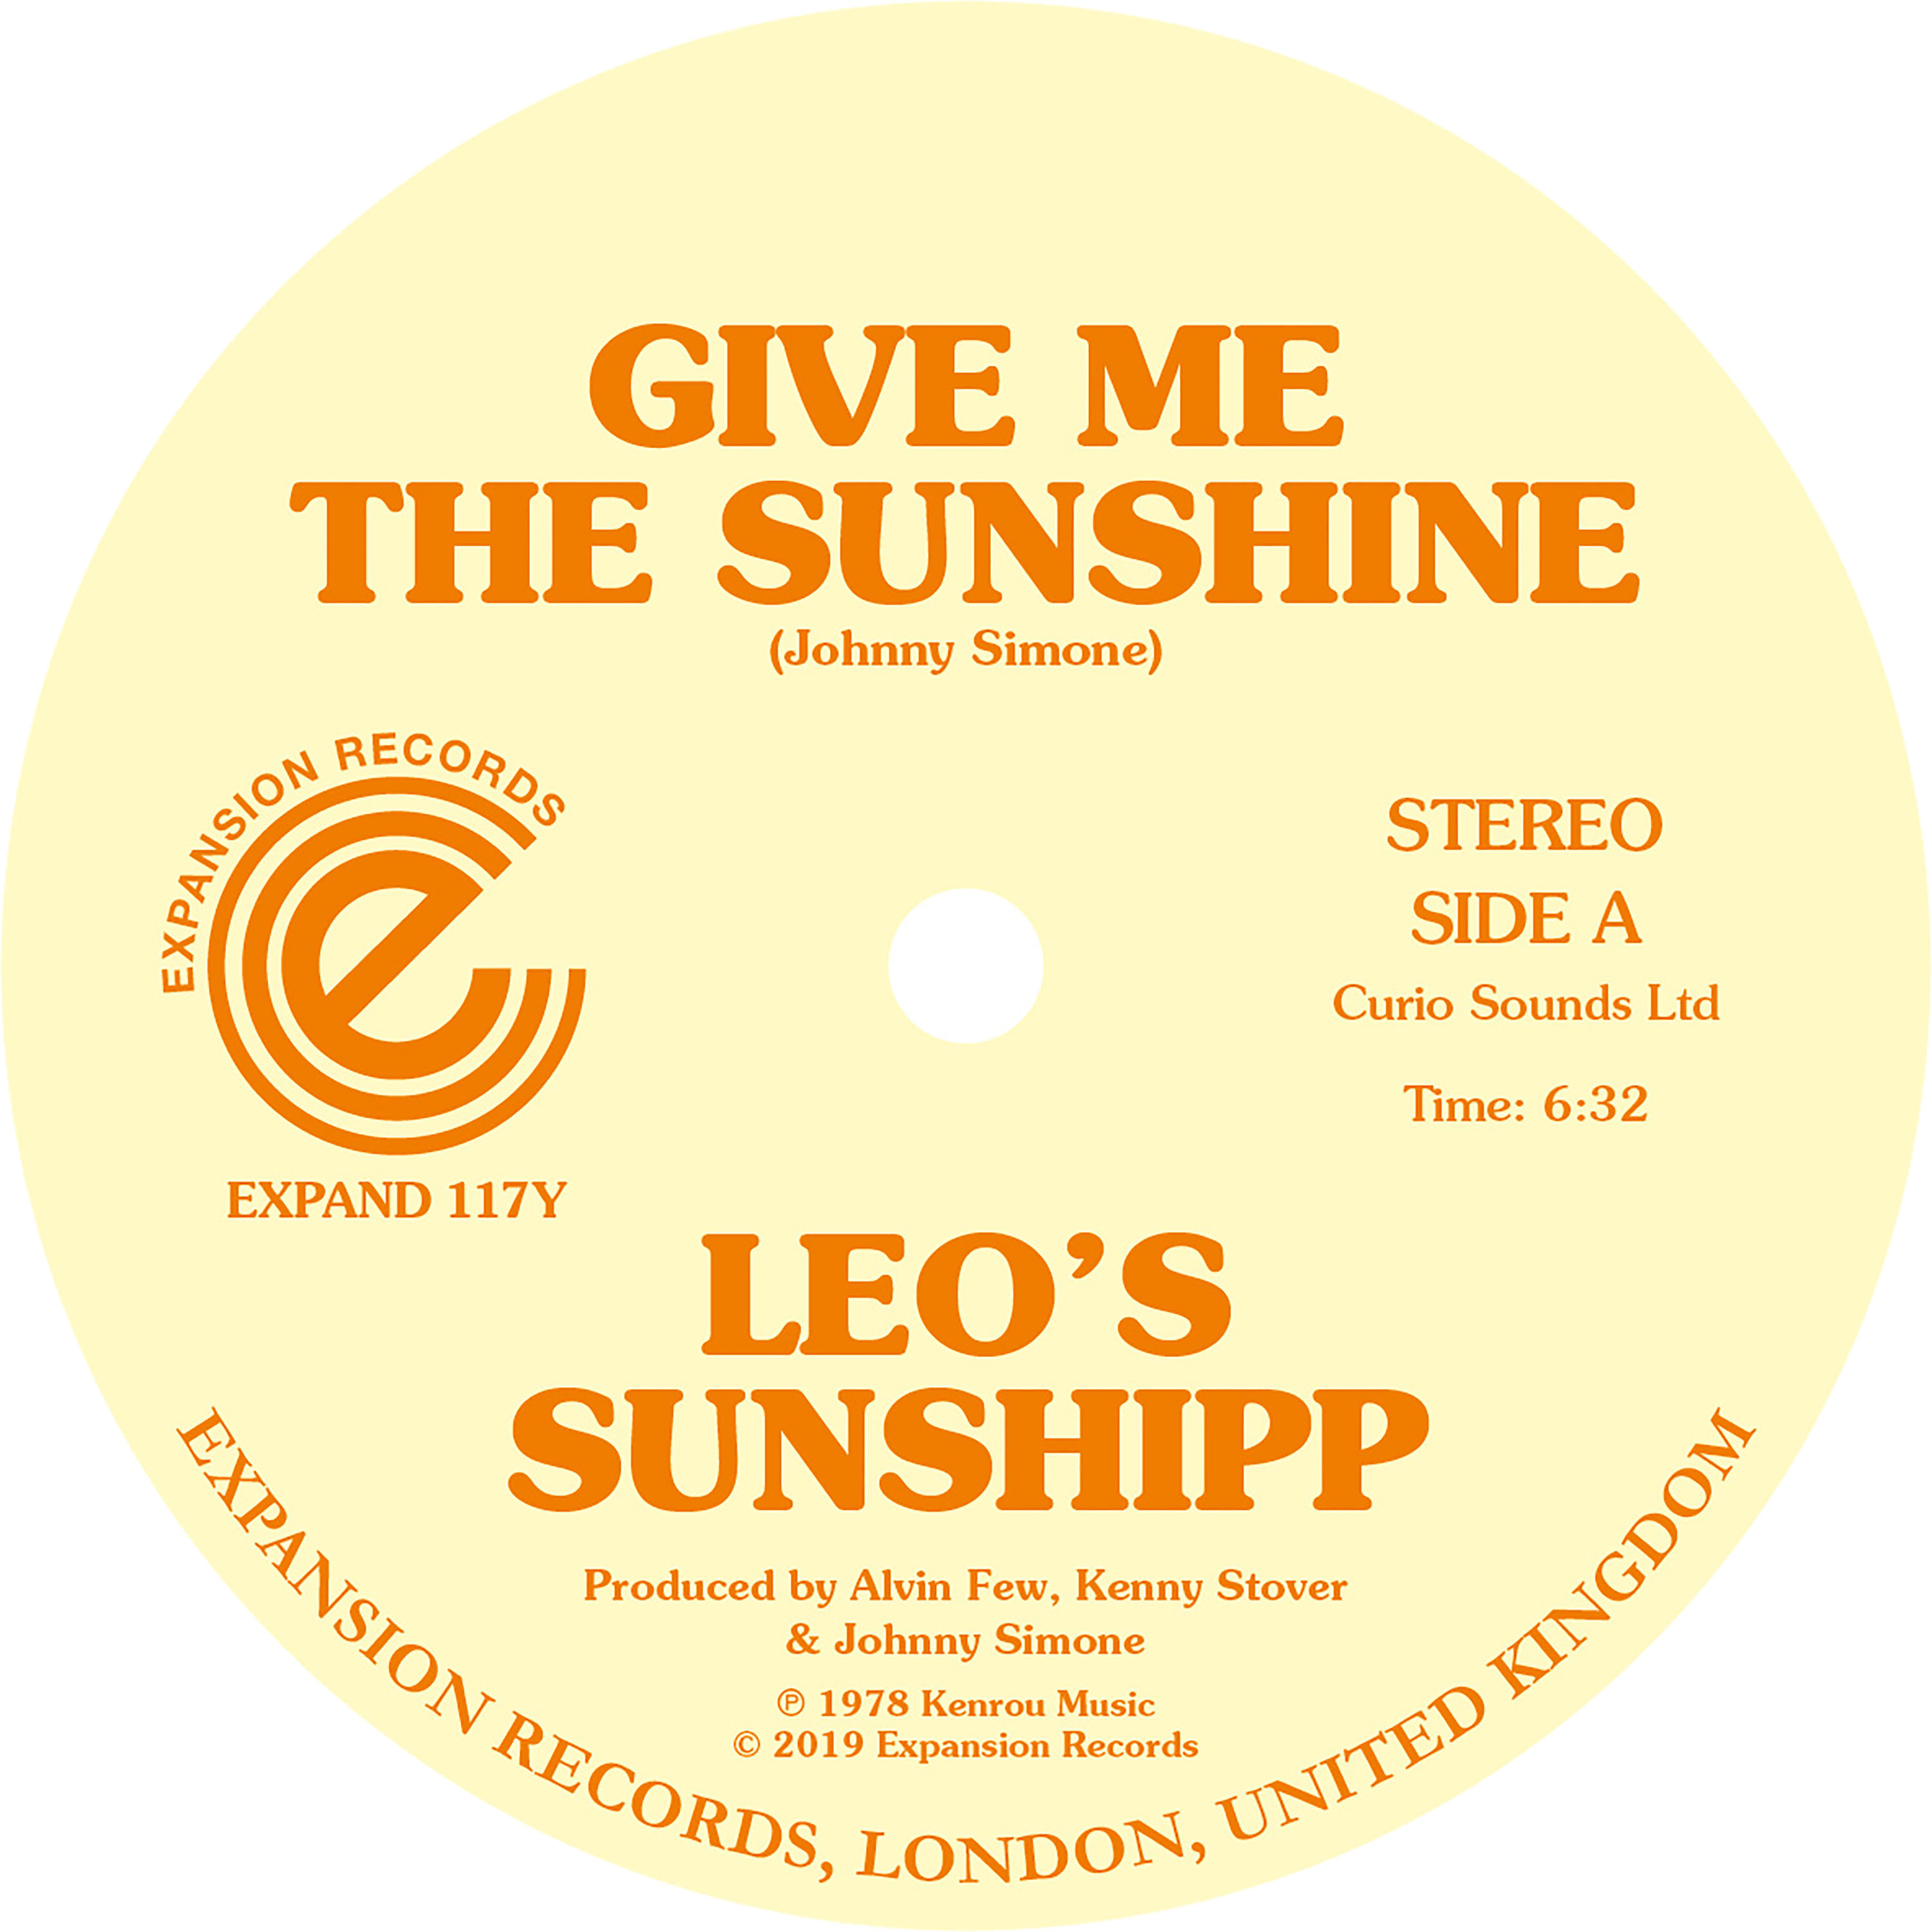 Leo's Sunshipp/GIVE ME THE SUNSHINE 12""